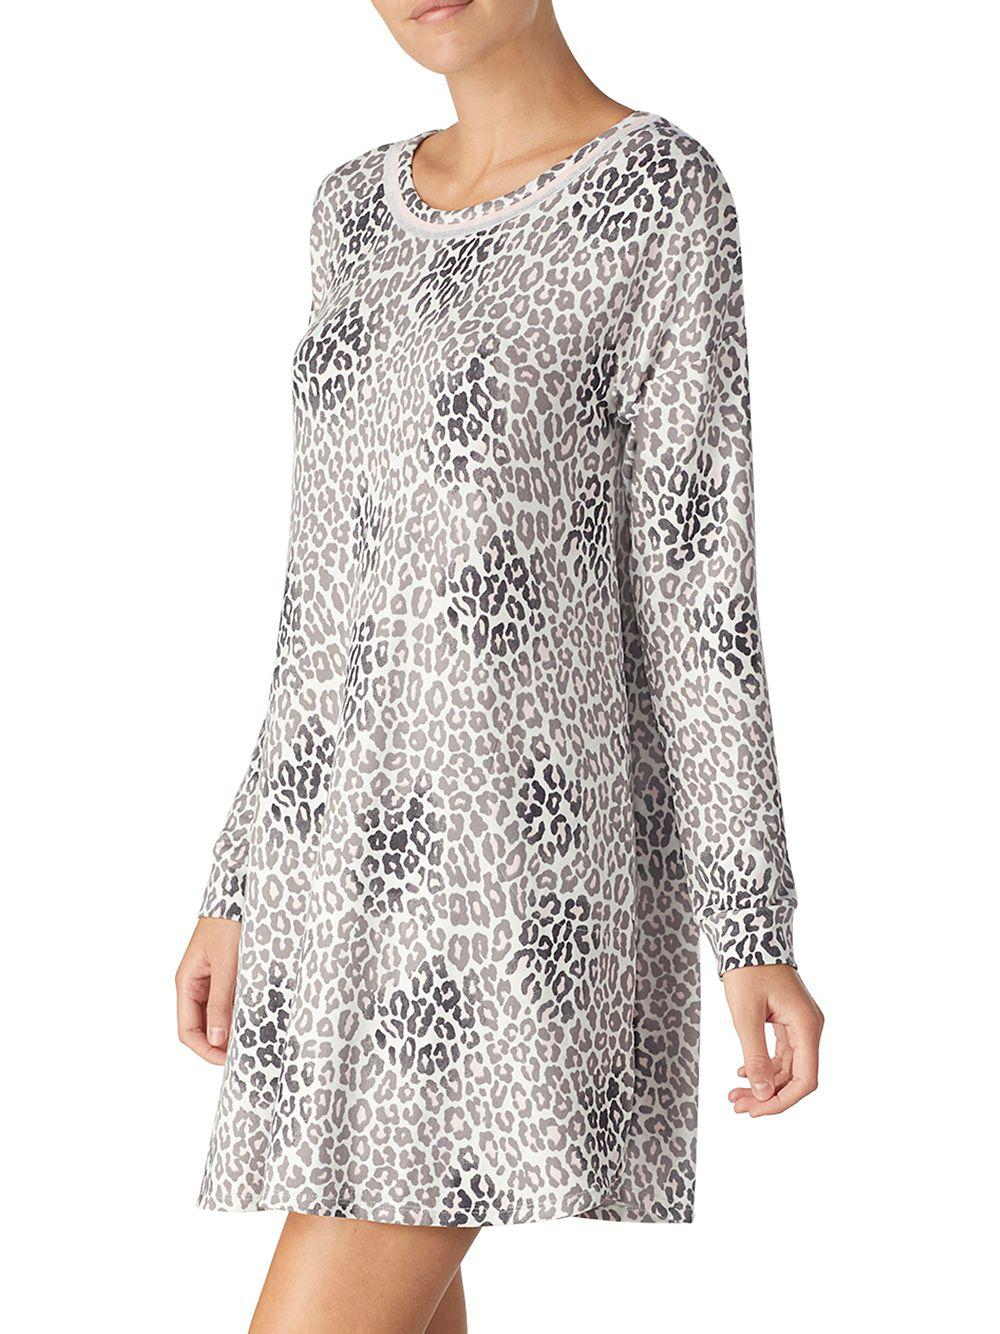 Kensie - Gray Animal Print Jersey Sleepshirt - Lyst. View fullscreen ef7403bfb